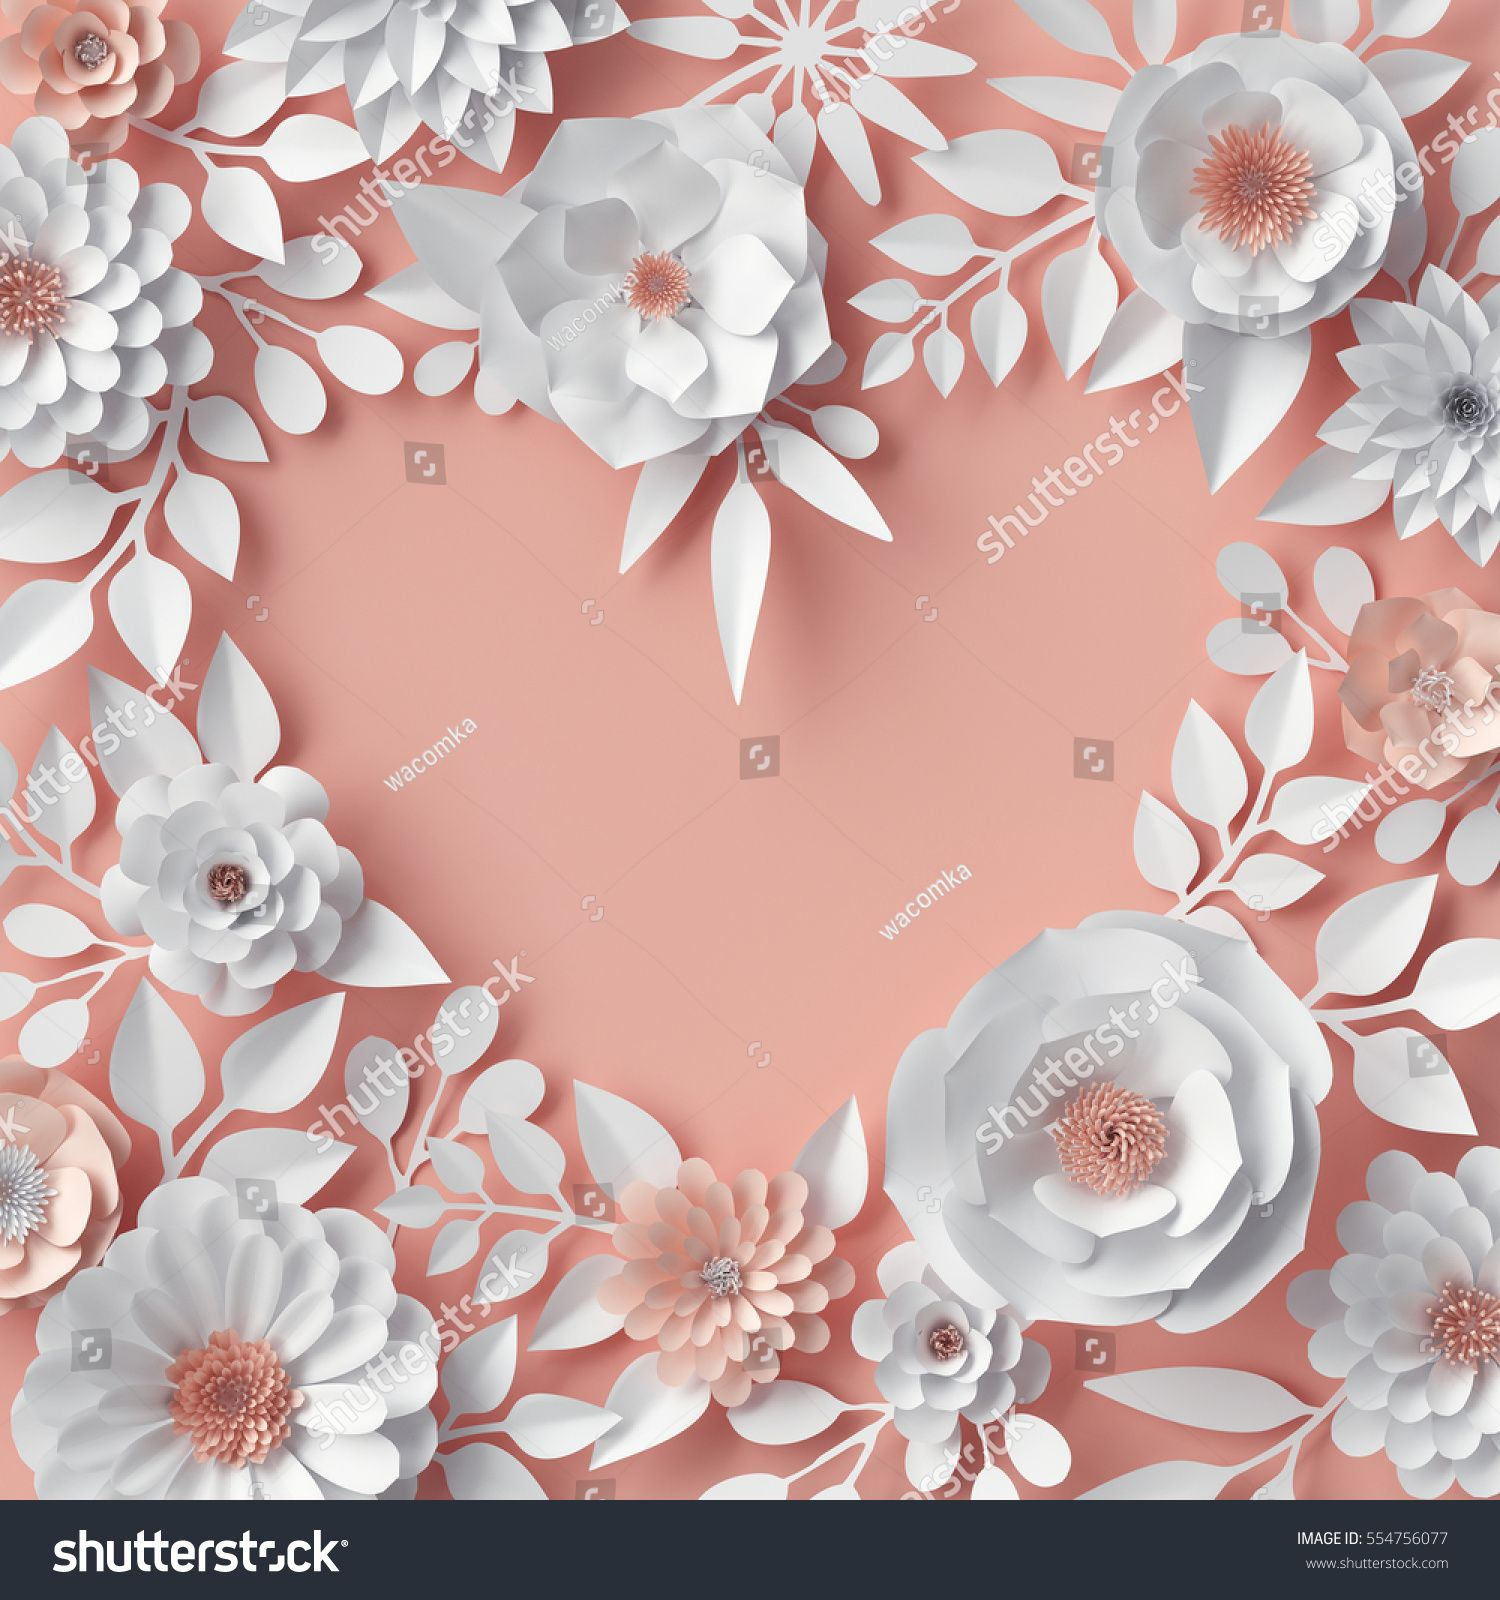 3d Render Digital Illustration Blush Pink Orange Paper Flowers